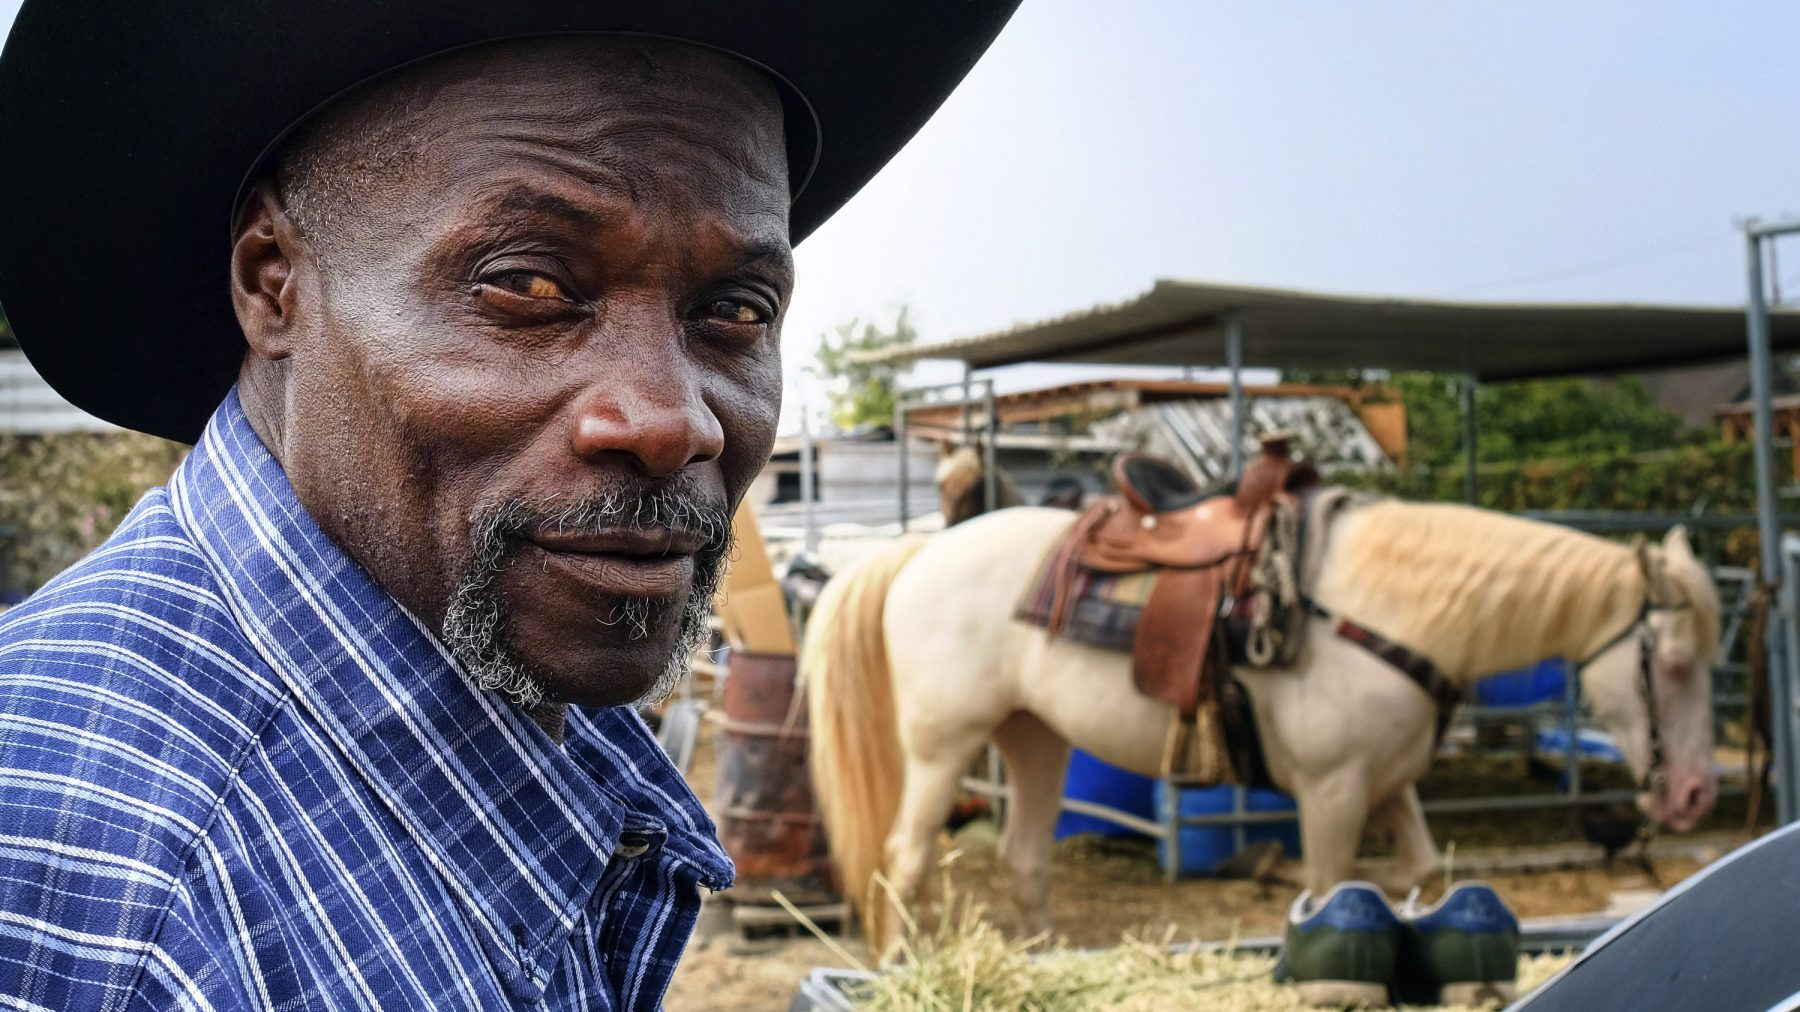 """Ivory McCloud poses for a photo with his horse, Diamond, at his stable in the backyard of a home in Compton, Calif., on Sunday, Aug. 7, 2016. """"I've got 40 years in this, man,"""" the 56-year-old horseman says. """"My dad was a cowboy. I'm a cowboy. I grew up in Compton. I live in Compton and I've been training horses since I was a kid."""" (AP Photo/Richard Vogel)"""